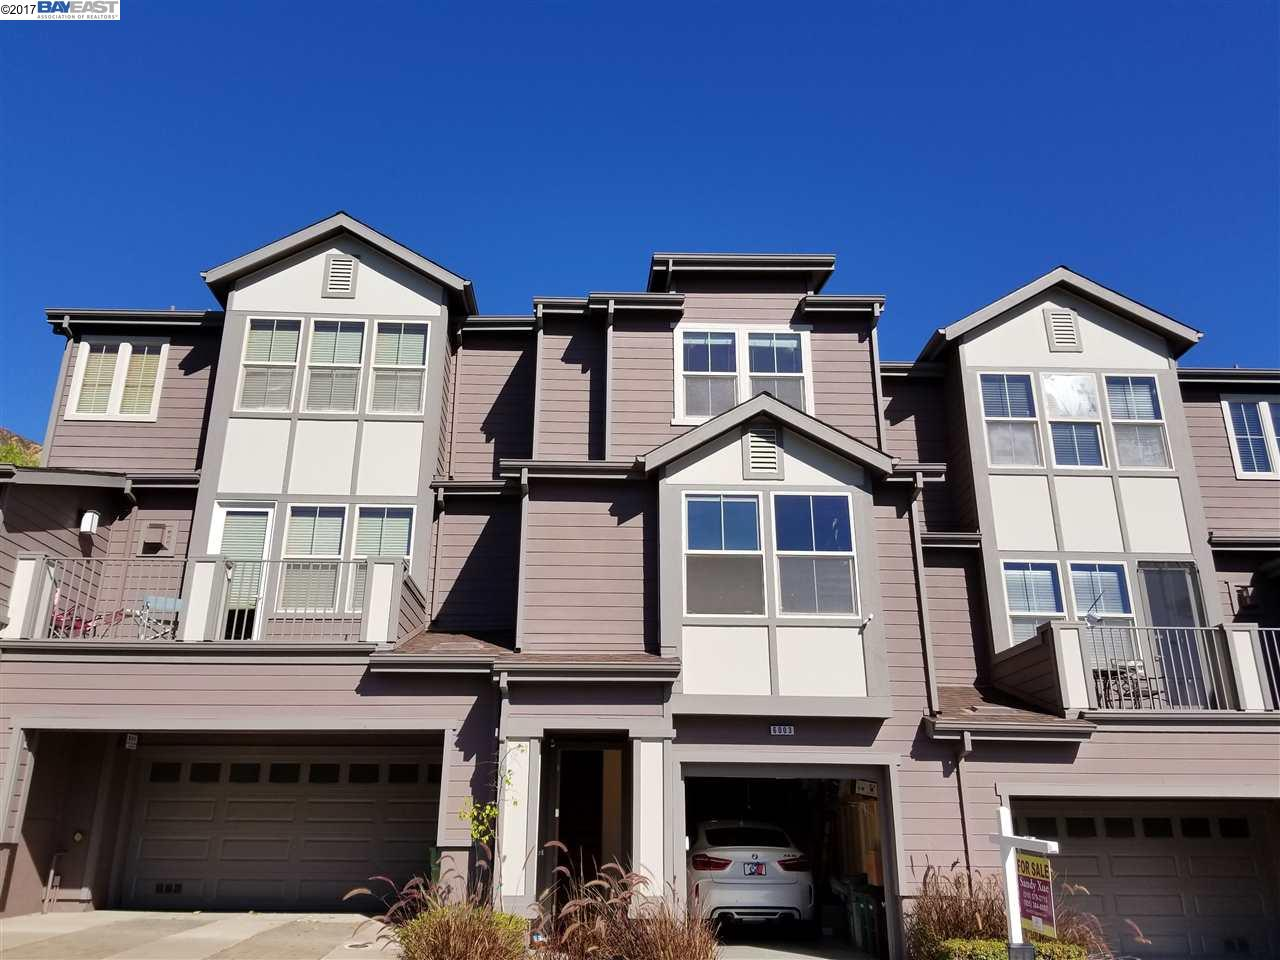 Townhouse for Sale at 6003 Old Quarry Loop 6003 Old Quarry Loop Oakland, California 94605 United States